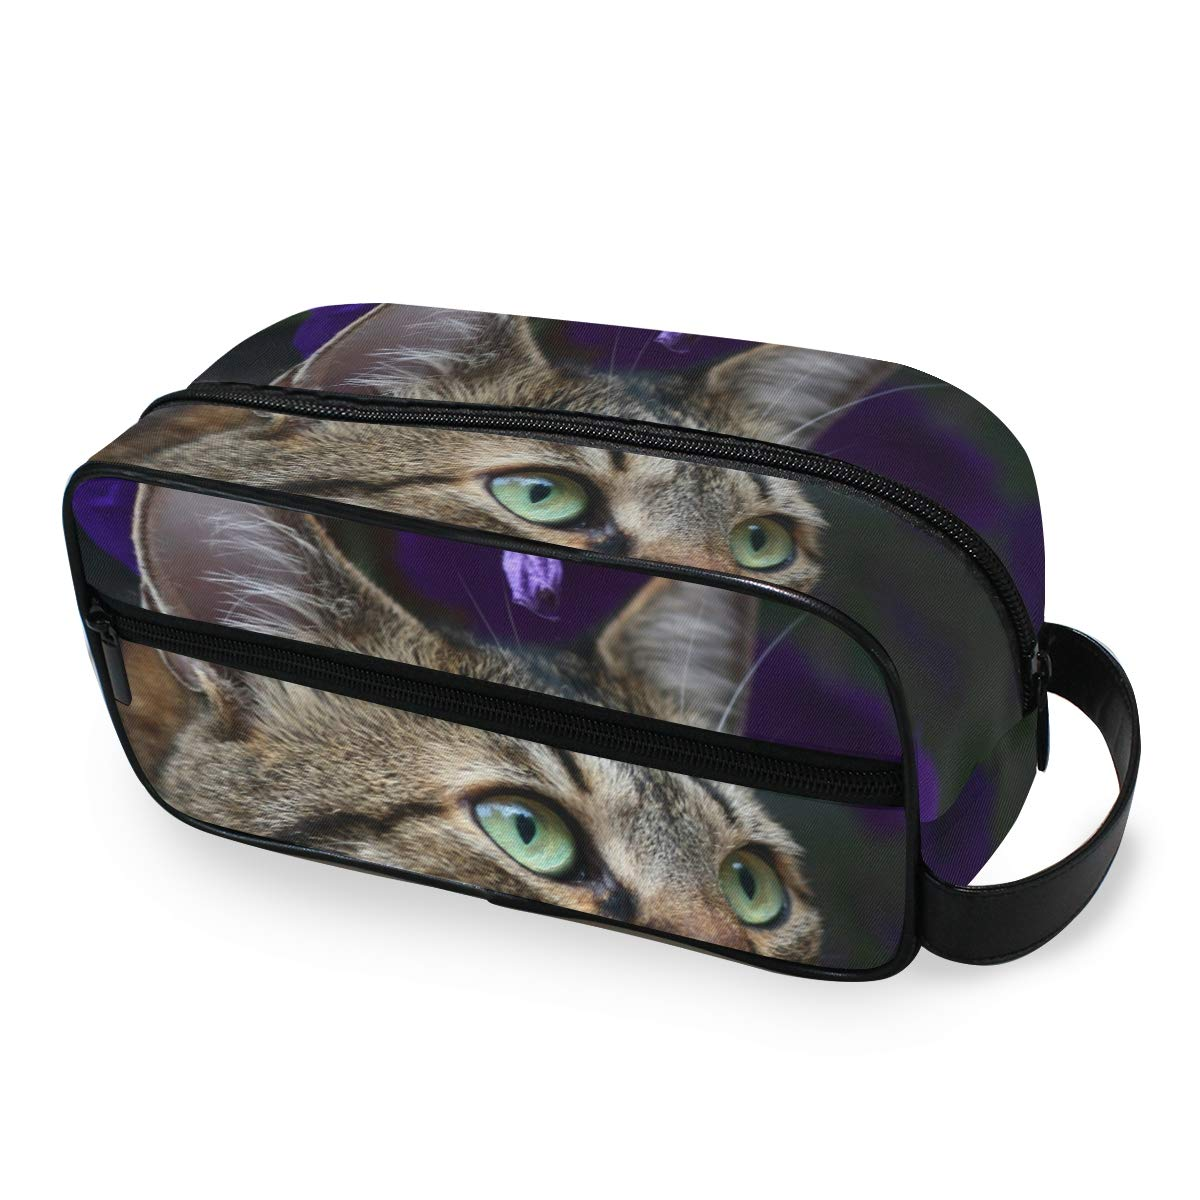 Makeup Bag Portable Travel Cosmetic Toiletry Bag Cute Cat In Purple Flowers Organizer Accessories Case Tools Case for Beauty Women